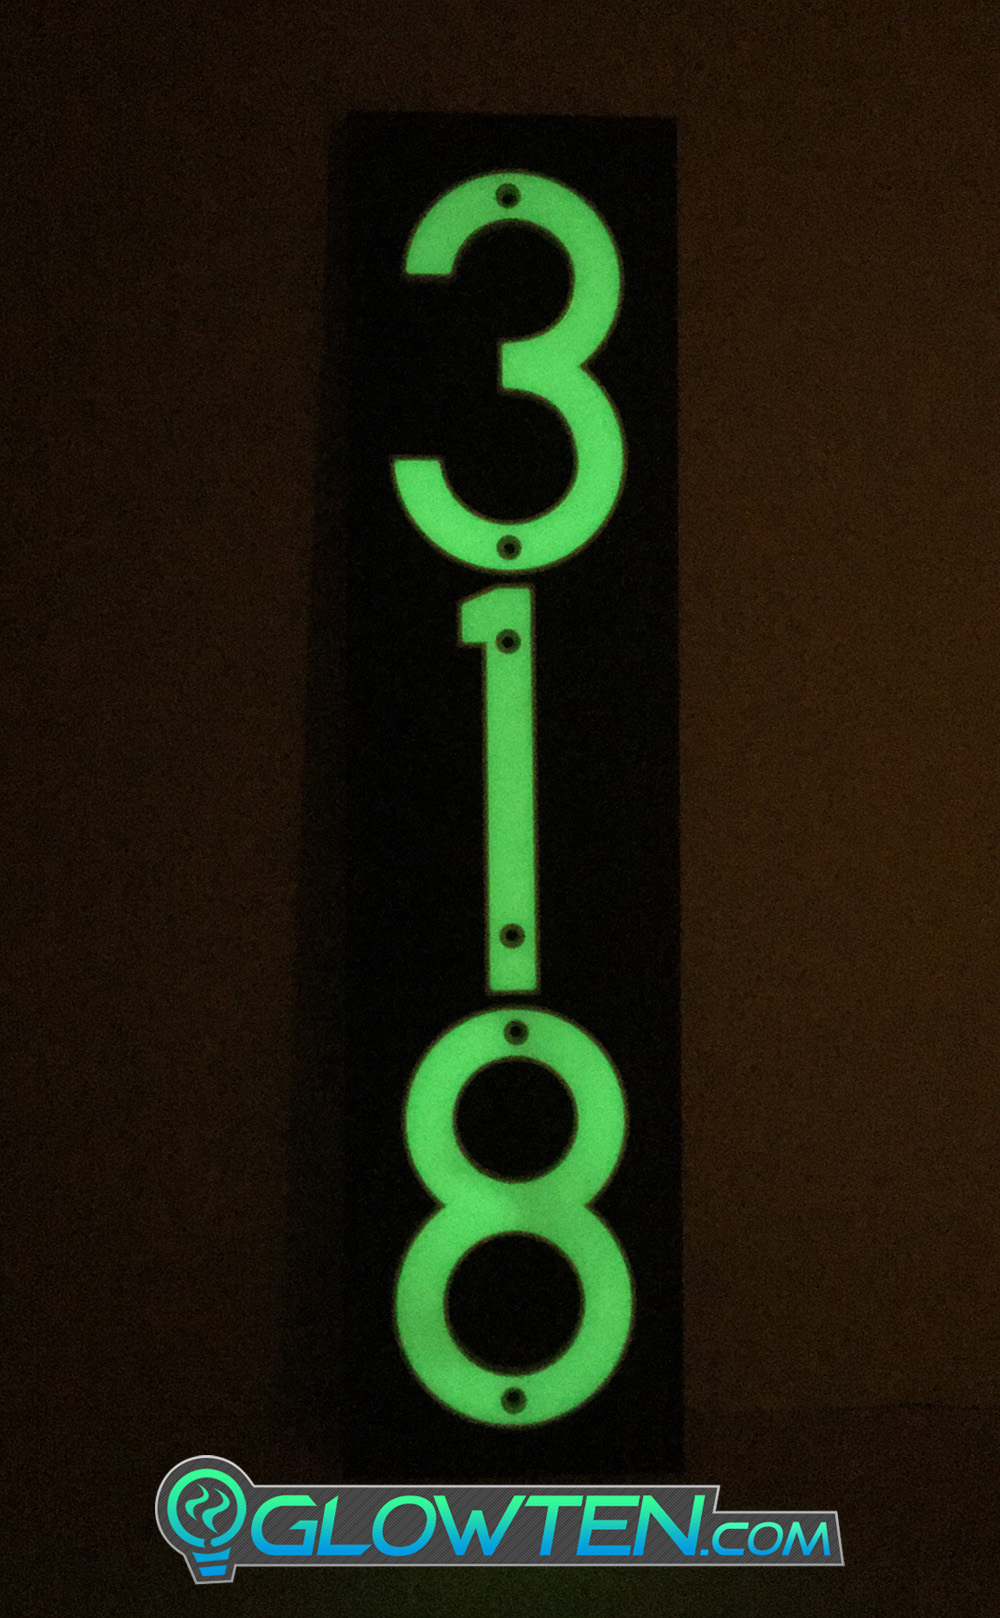 GLOWTEN.com - Fully Customizable Please Pick And Choose Your Numbers, Abs Plastic Body Photoluminescent Pigment, Ceiling Wall Decoration Kit THREE 3 NUMBERS with BLACK PLAQUE BACKING Glow In Dark House Address Number Horizontal Eco Friendly Photoluminescent Sign ABS Material Price For Whole Set picture photo cap preview pic image search 2